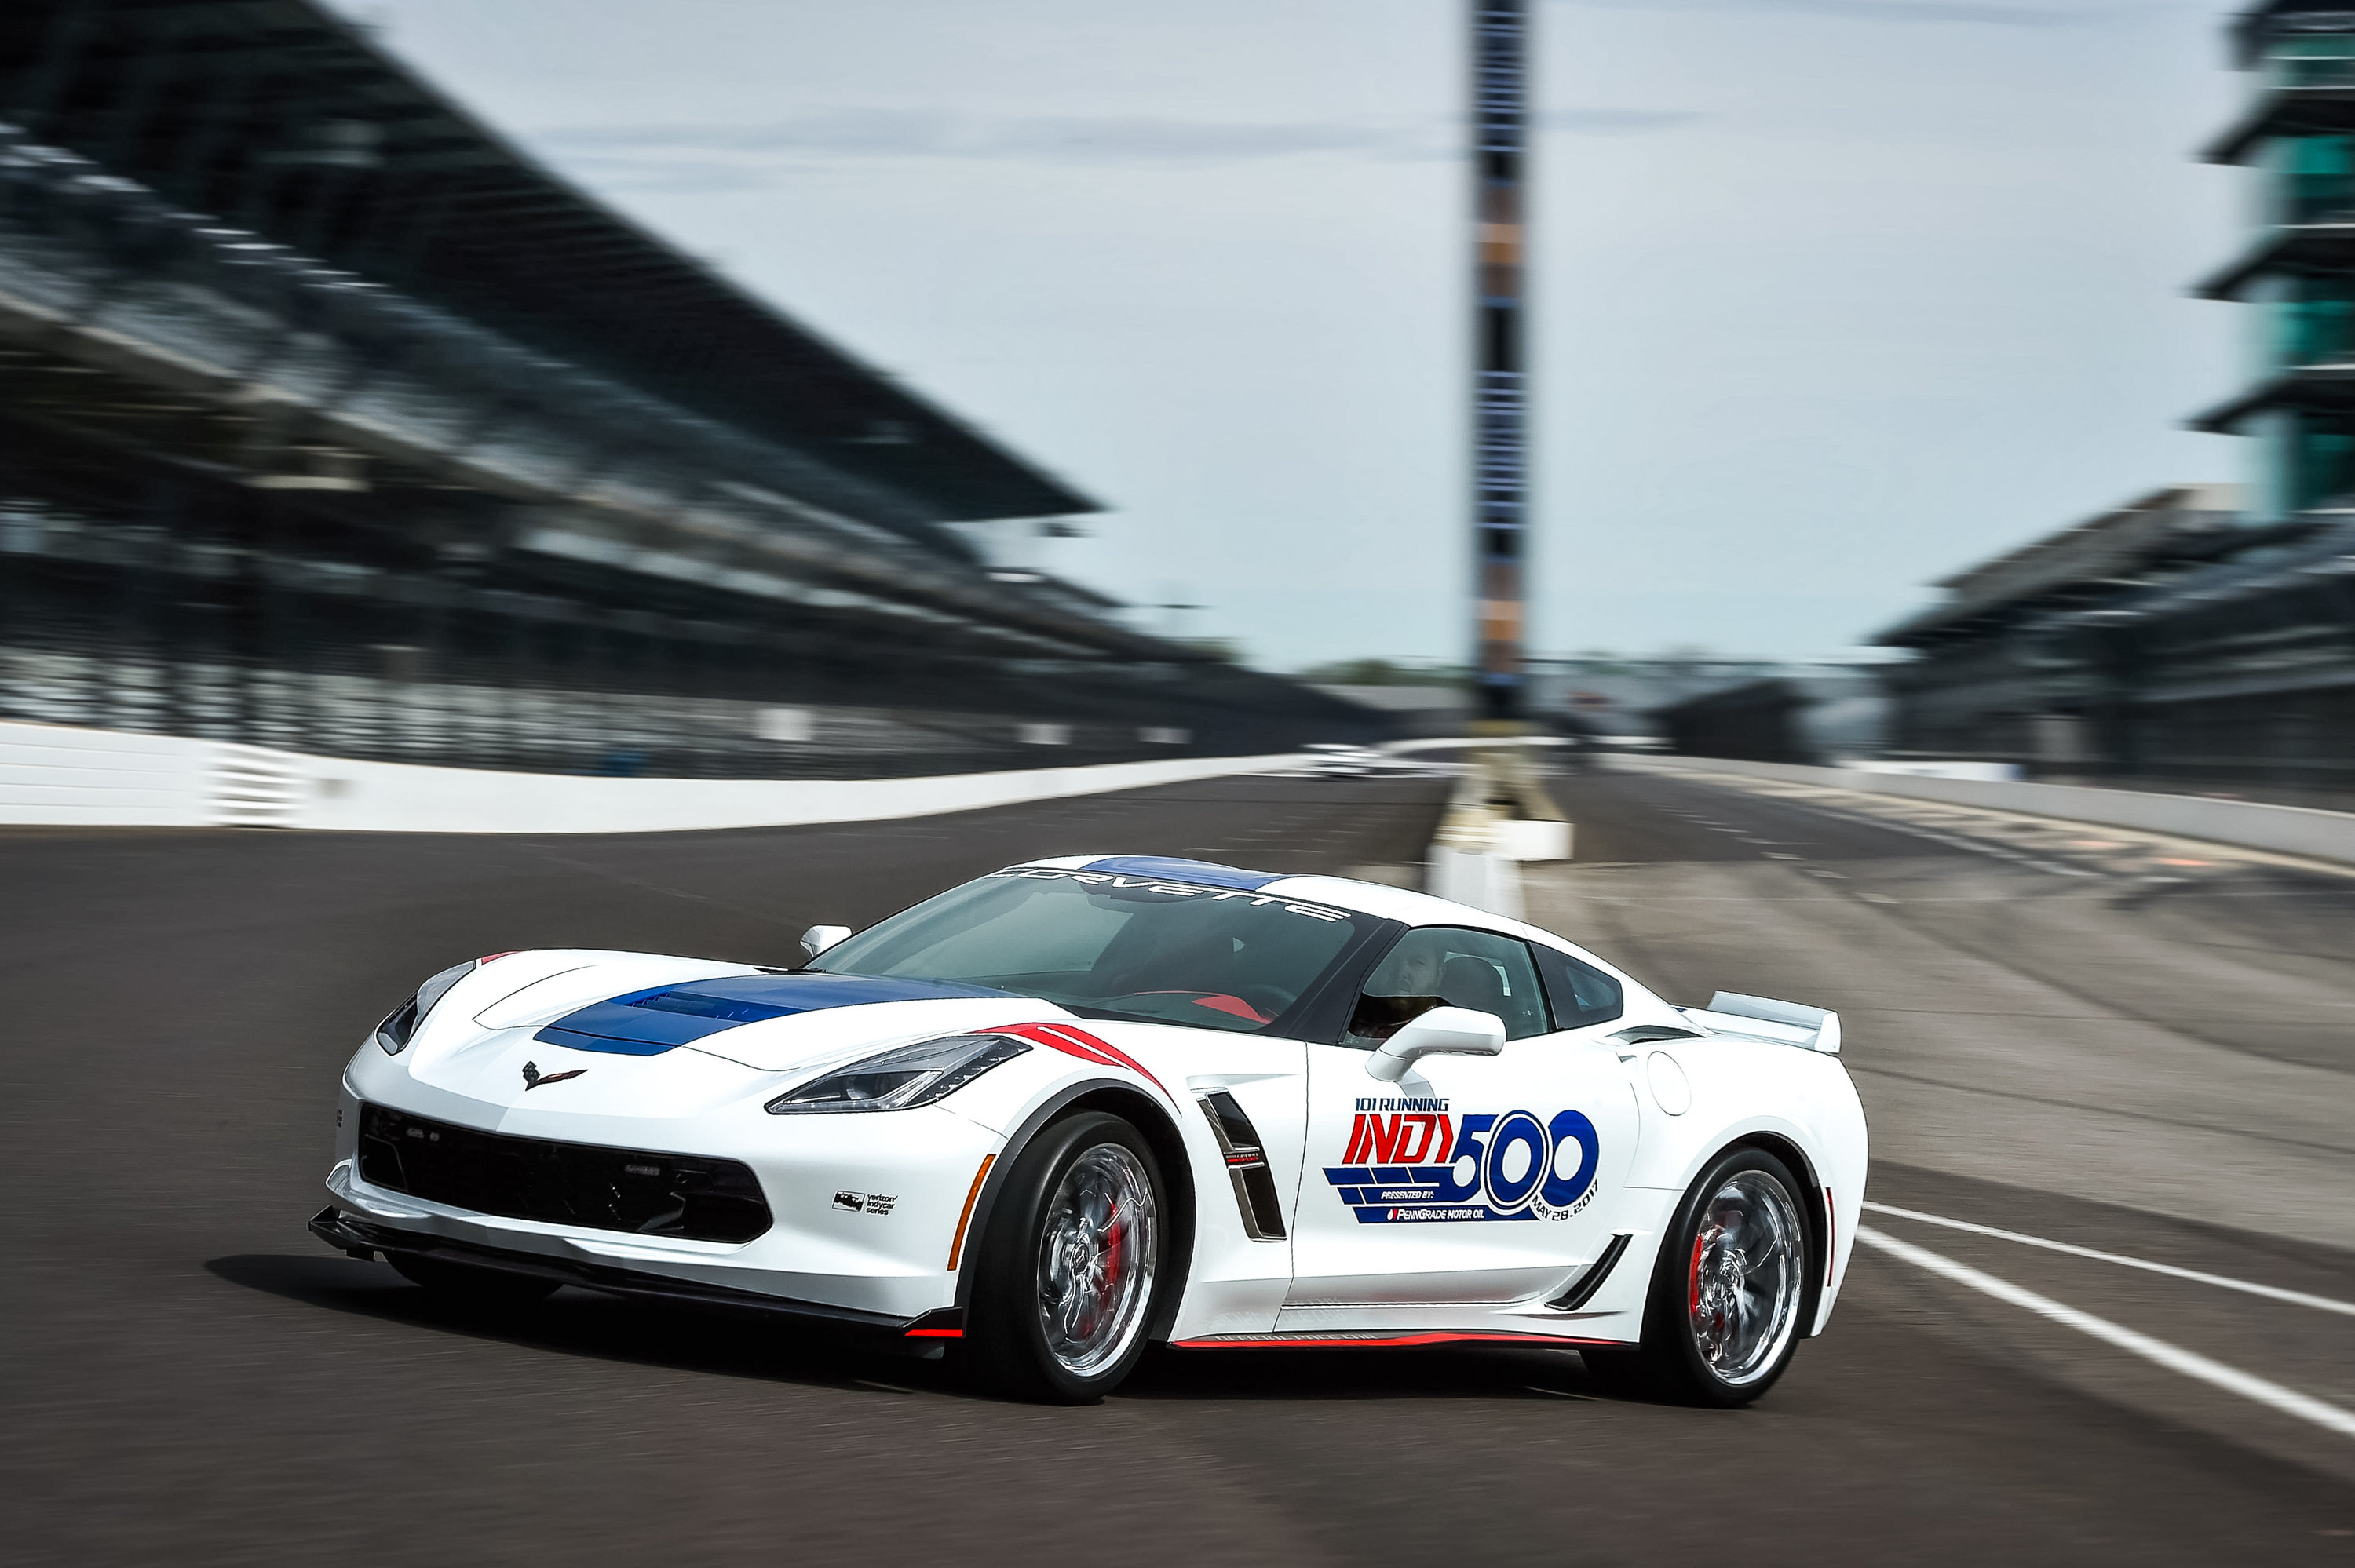 The 2017 Chevrolet Corvette Grand Sport Indianapolis 500 Pace Car At Motor Sdway In Indiana Will